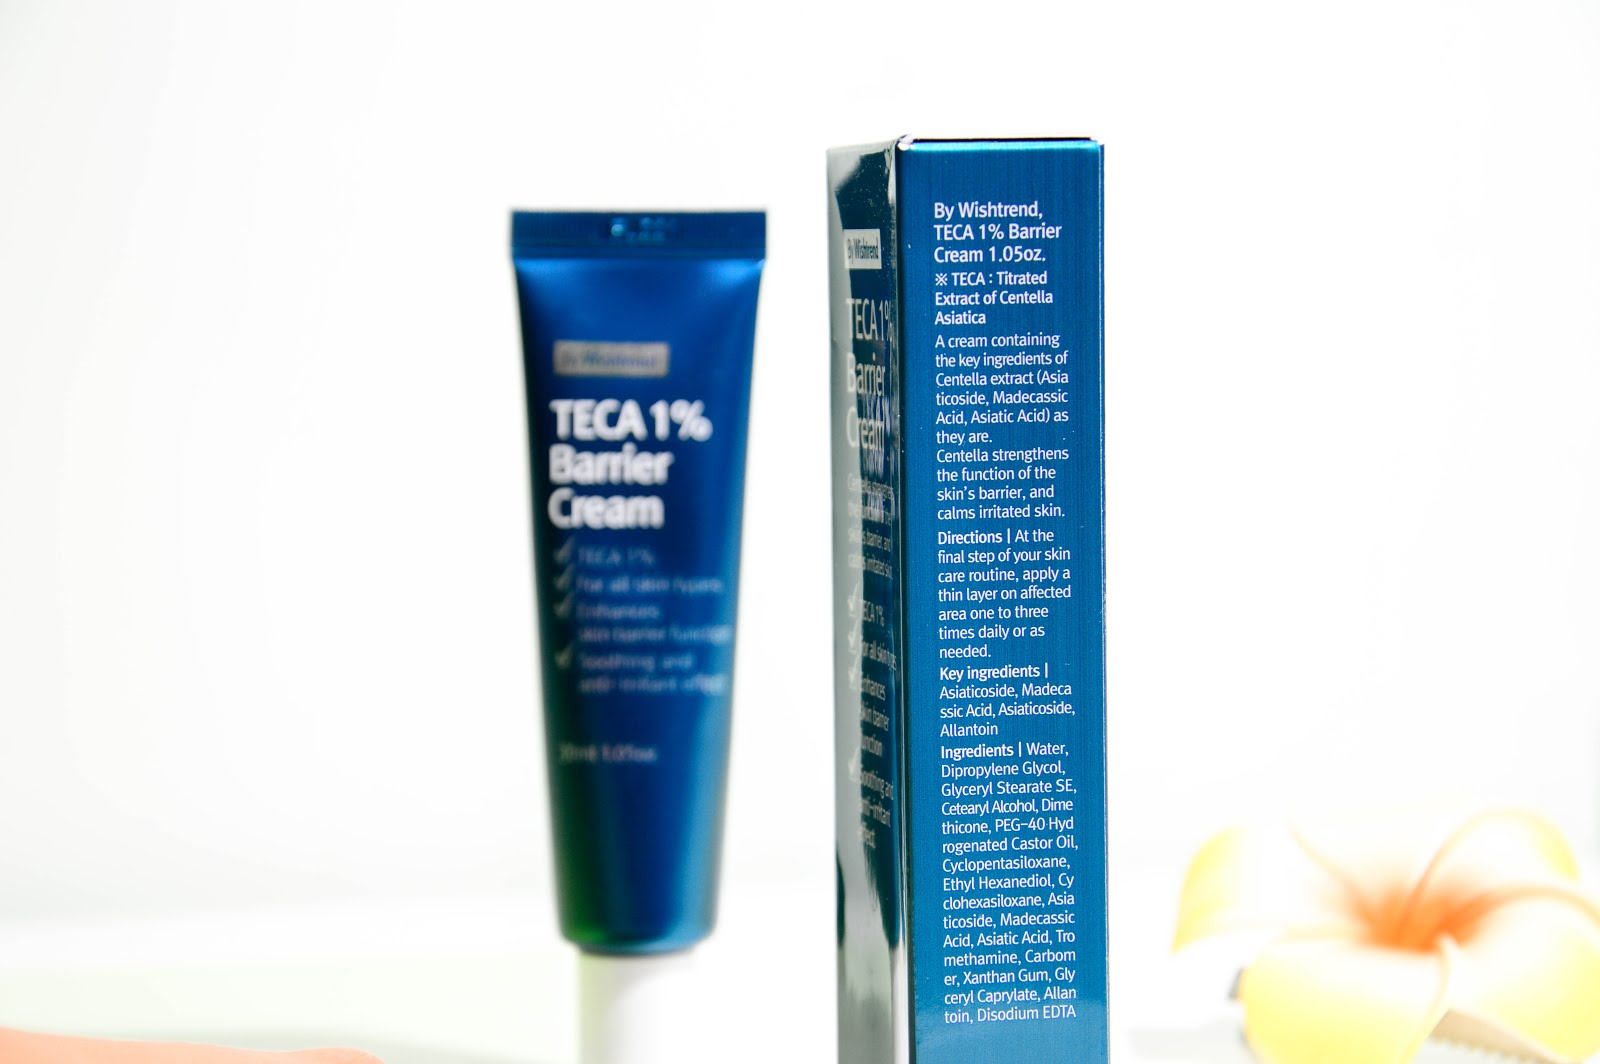 By Wishtrend TECA 1% Barrier Cream review